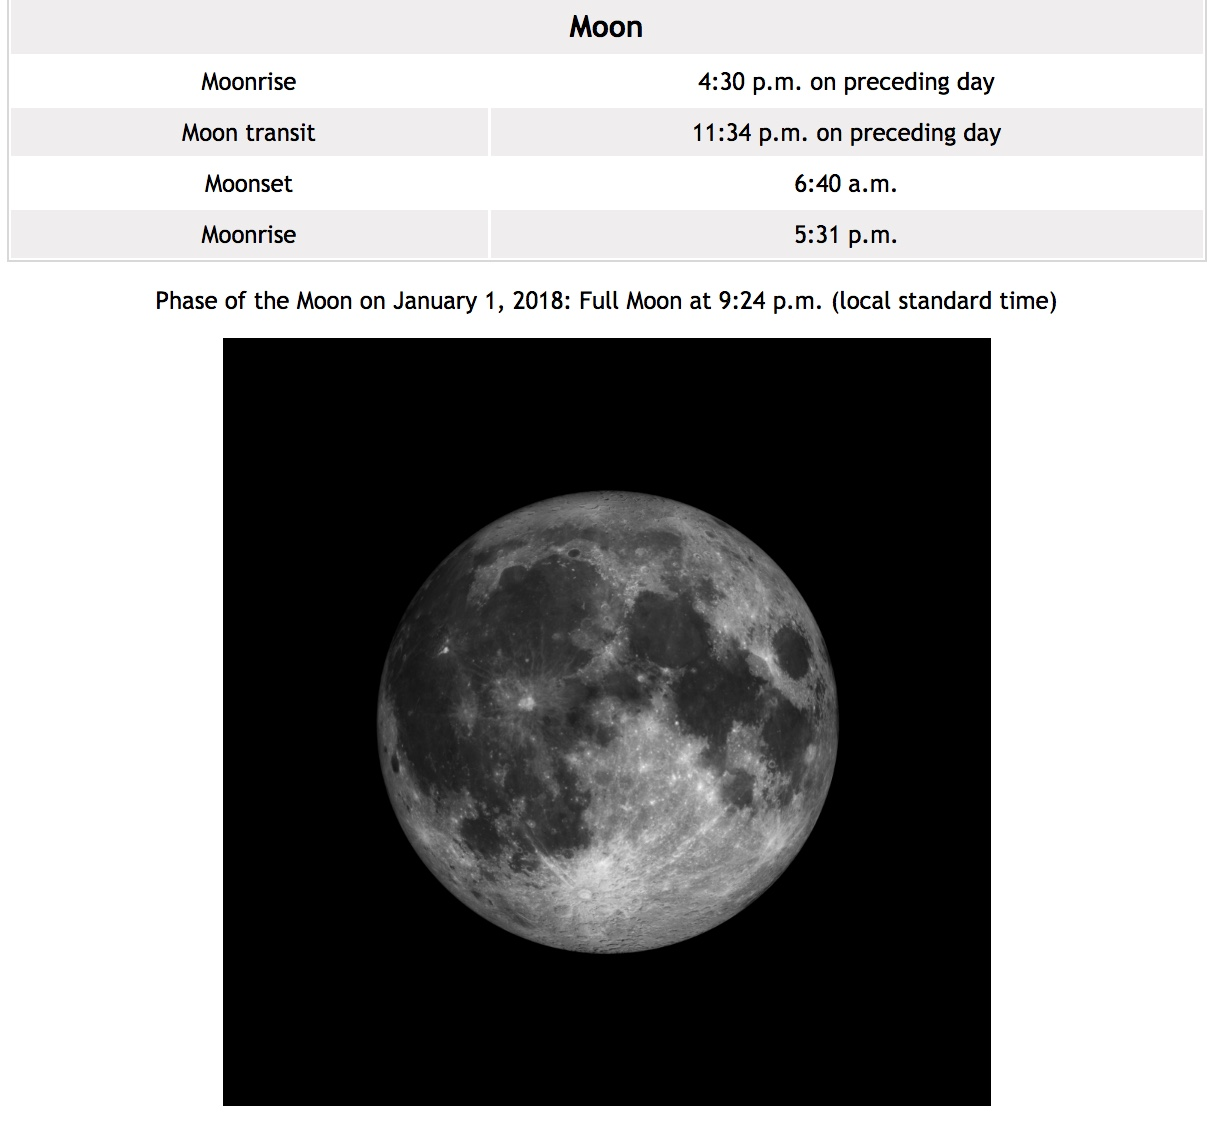 A screen shot of data and an image of the moon from the website is shown.